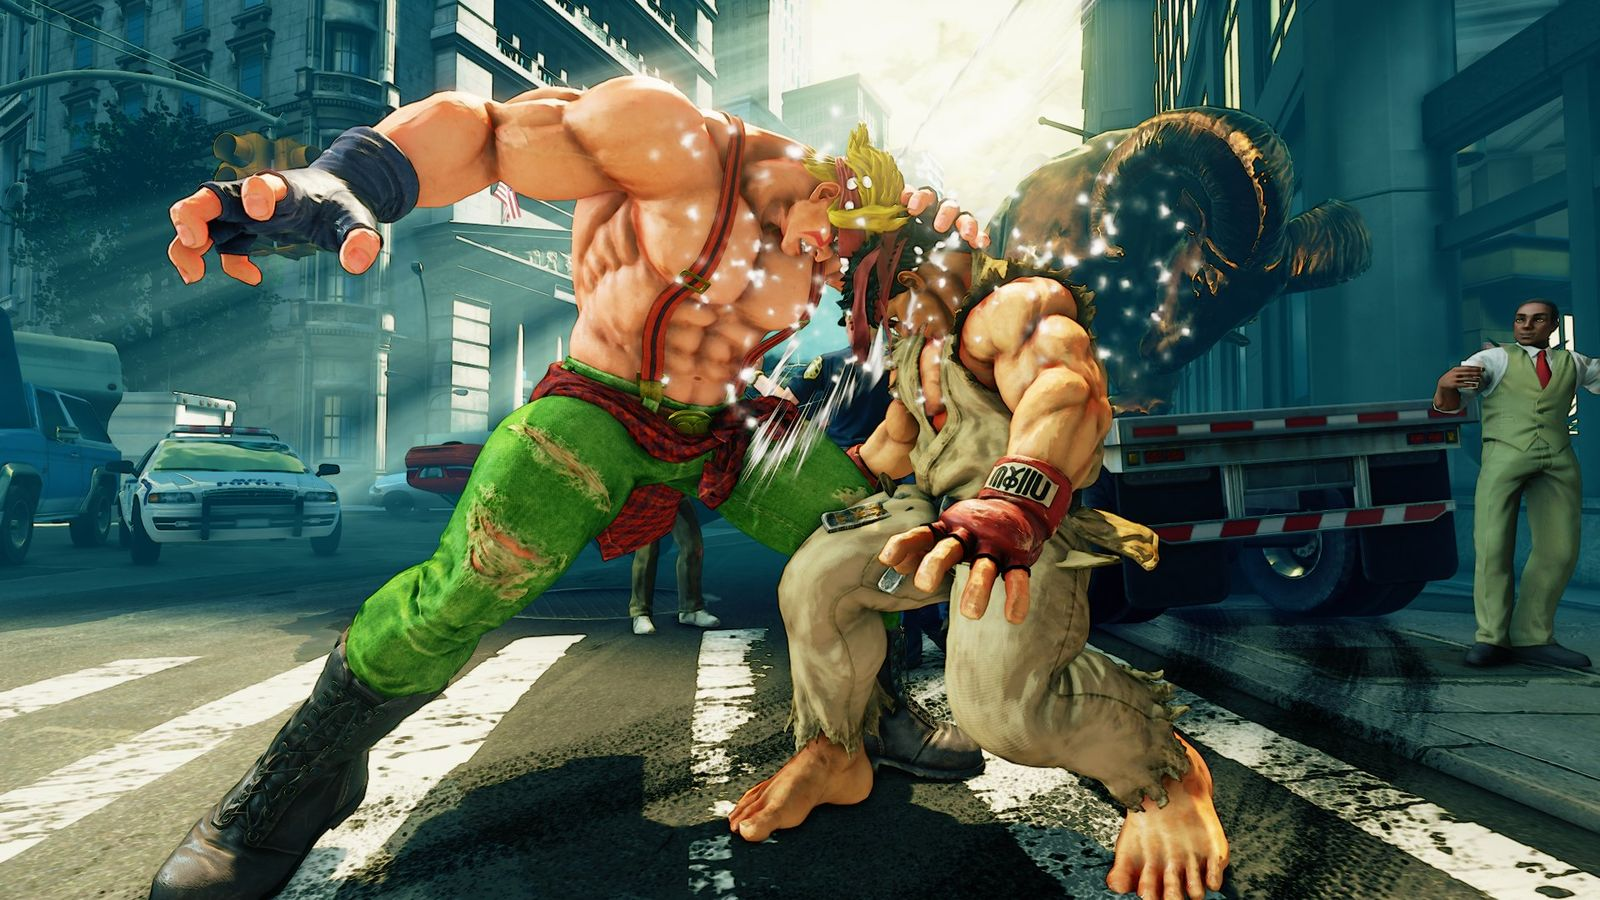 street-fighter-5-alex-ryu-screenshot_1920.0.0